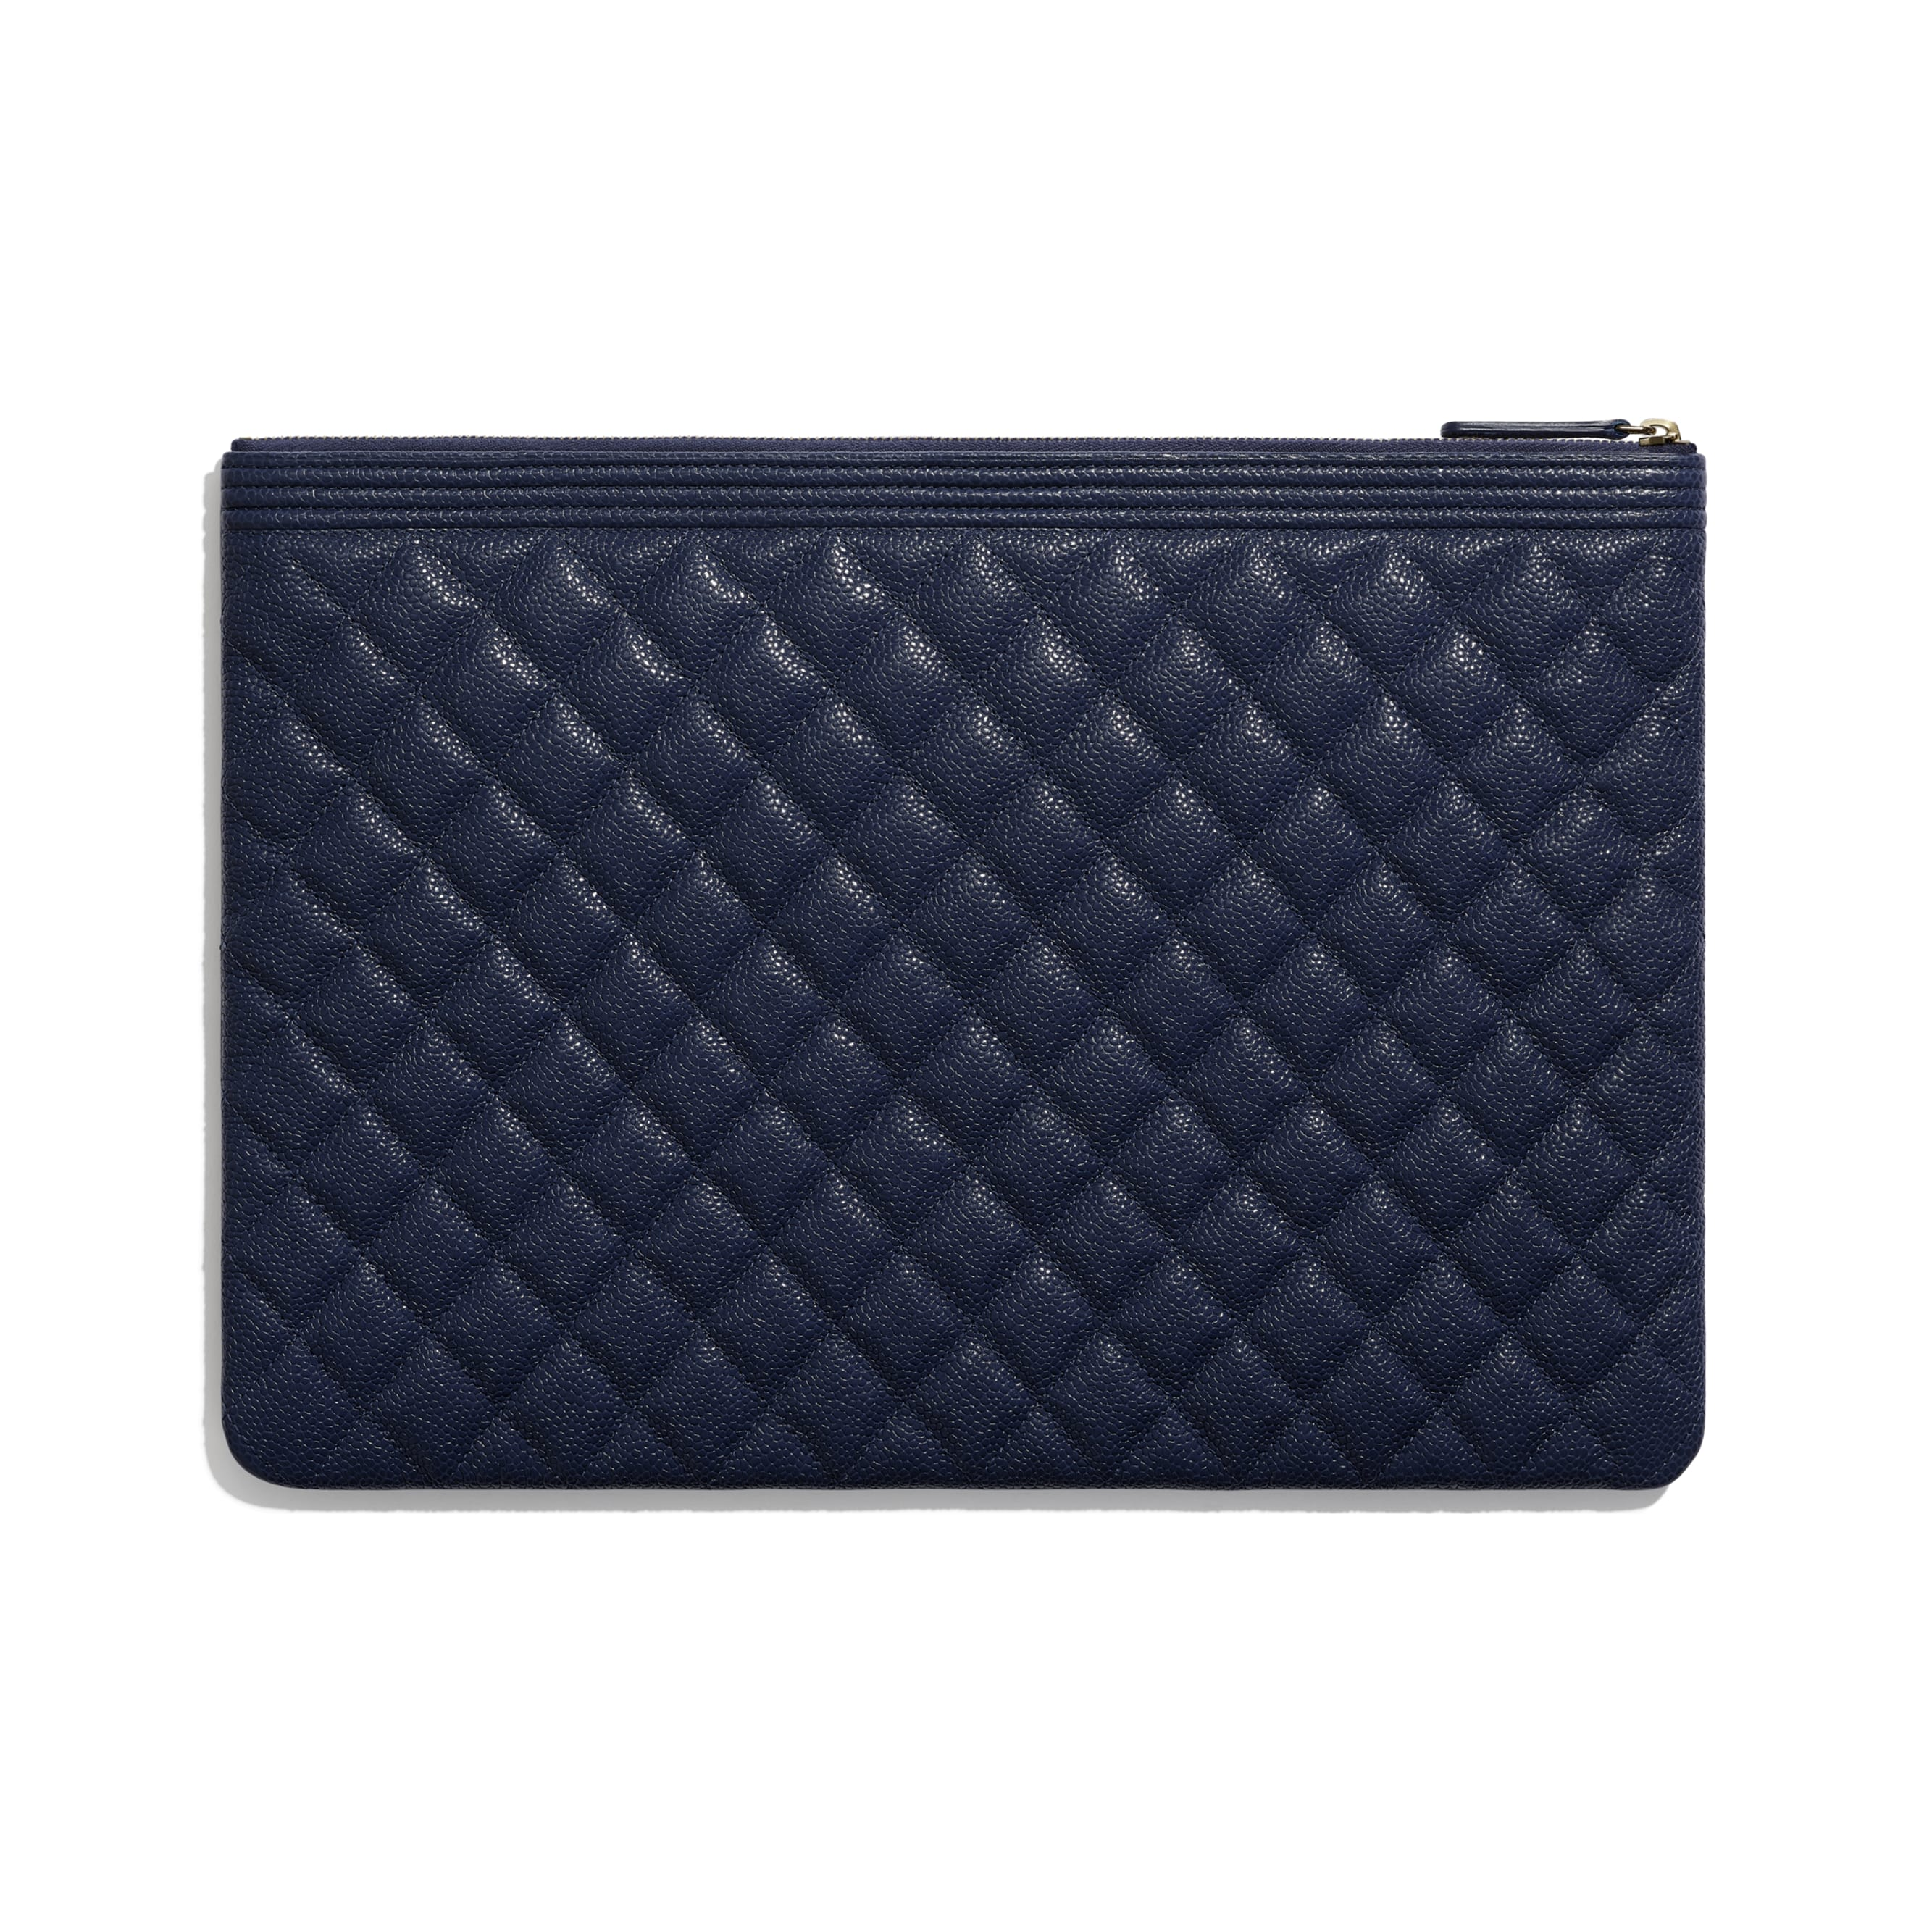 BOY CHANEL Large Pouch - Navy Blue - Grained Shiny Calfskin & Gold-Tone Metal - CHANEL - Alternative view - see standard sized version